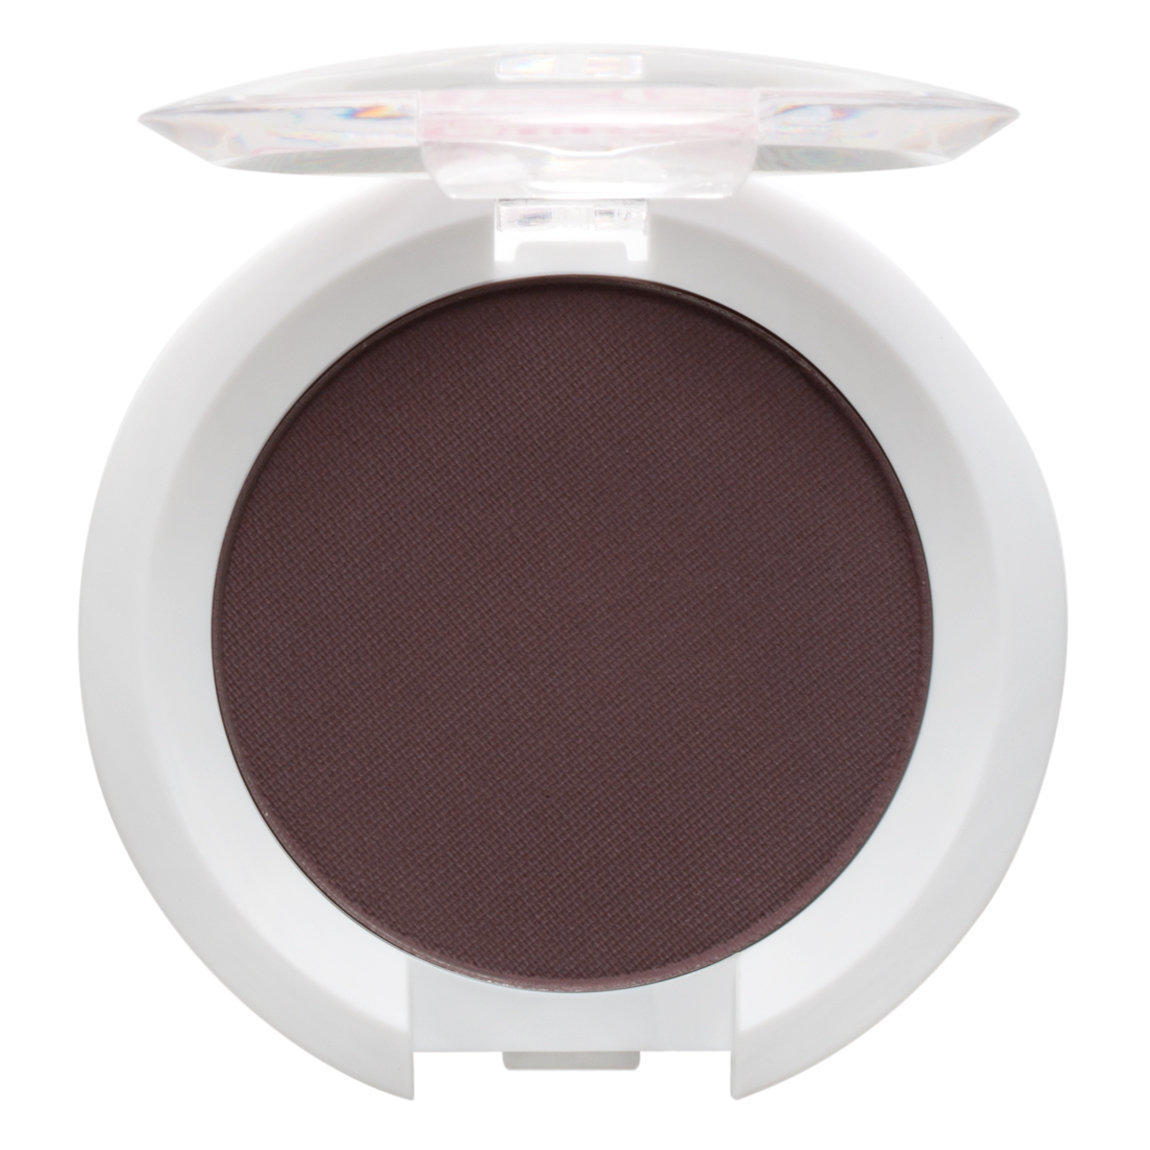 Sugarpill Pressed Eyeshadow Castle On The Hill (brown)